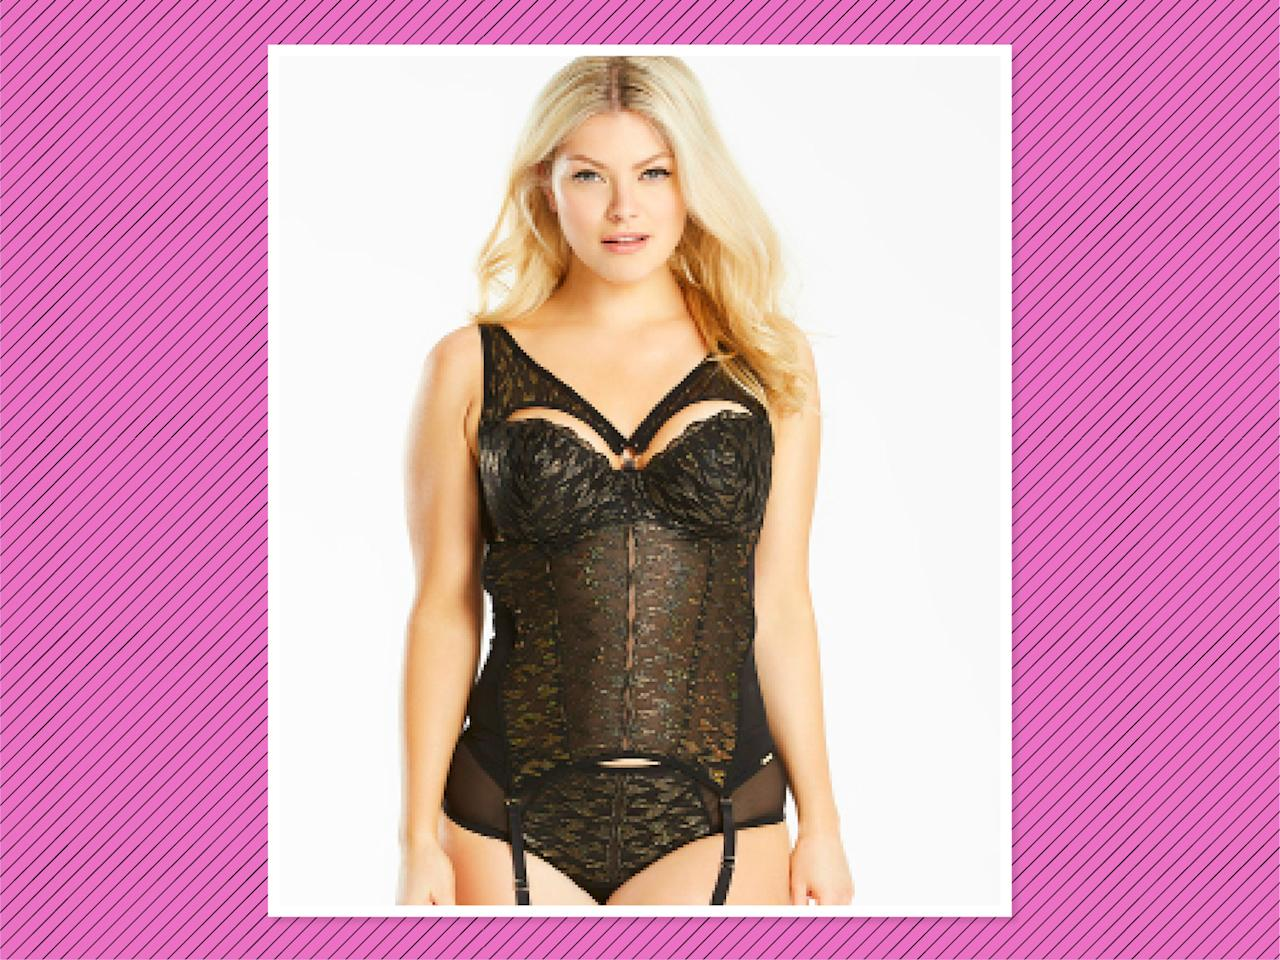 "<p>Figleaves Curve Mistress Black/Gold Basque, $68, <a rel=""nofollow"" href=""https://www.simplybe.com/en-us/products/the-games-mistress-black-gold-basque/p/HP501#v=color%3AHP501_BLACK%2FGOLD%7C"">Simply Be</a> (Photo: Simply Be) </p>"